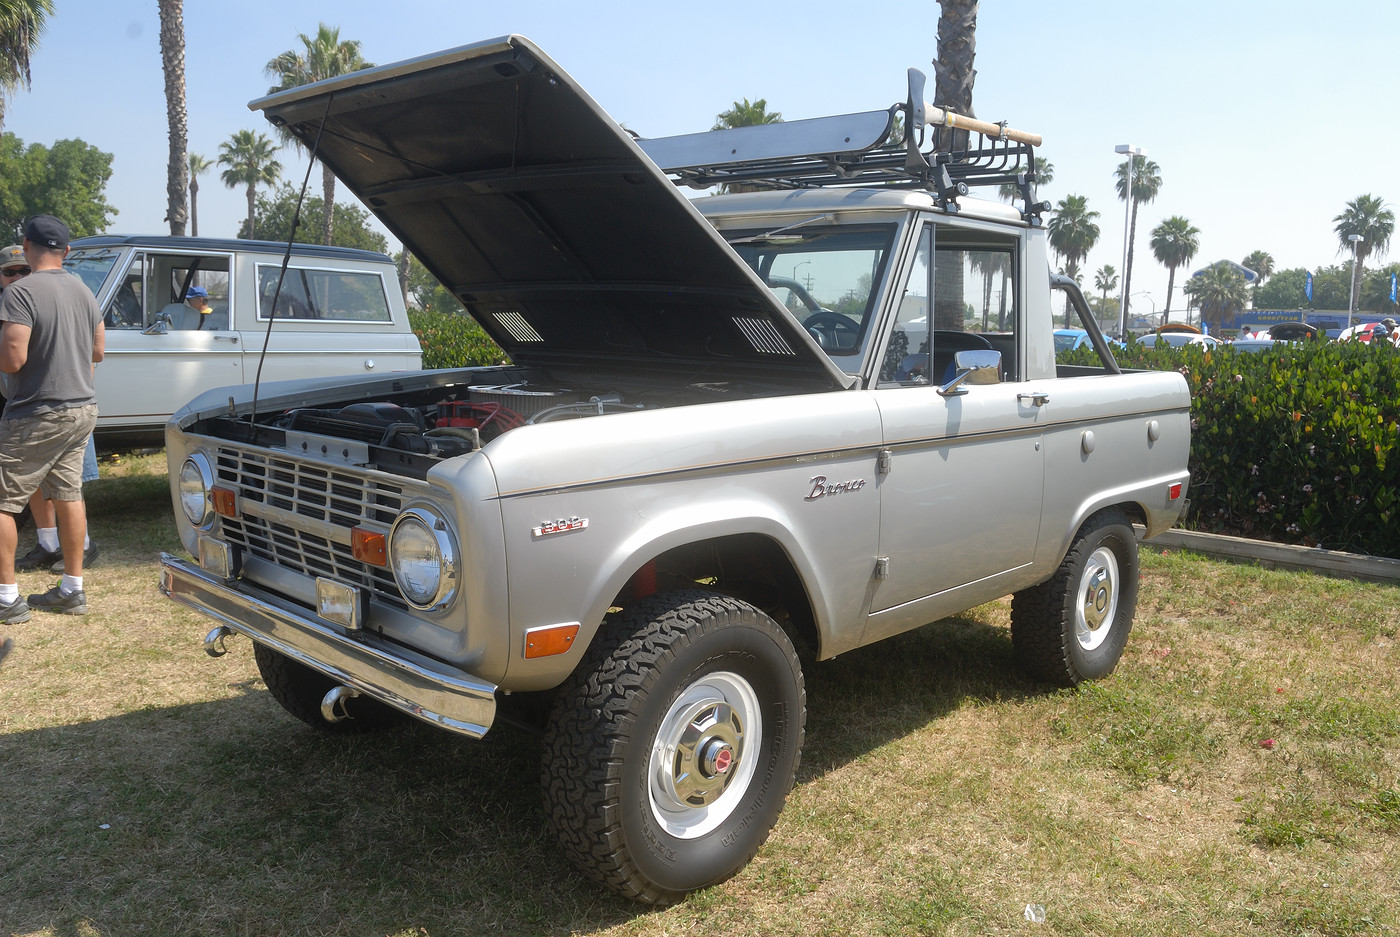 unidentified Ford Bronco DSC 4858